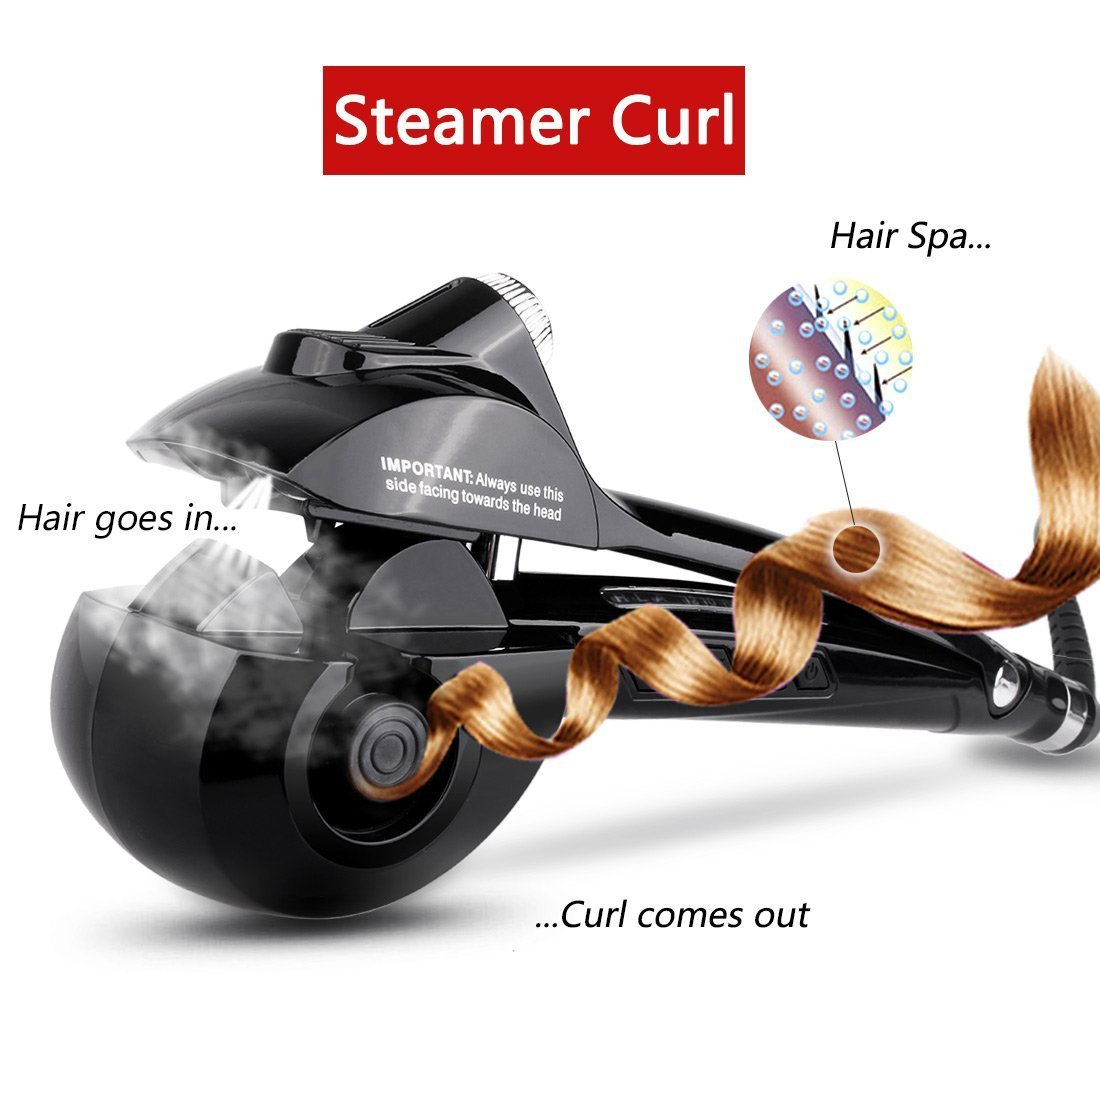 c1c2904987ff5 Get Quotations · Diglot Automatic Hair Steam Curler Ceramic Curling Iron  Professional Stylish Hair Curler Auto Steam Spray Hair